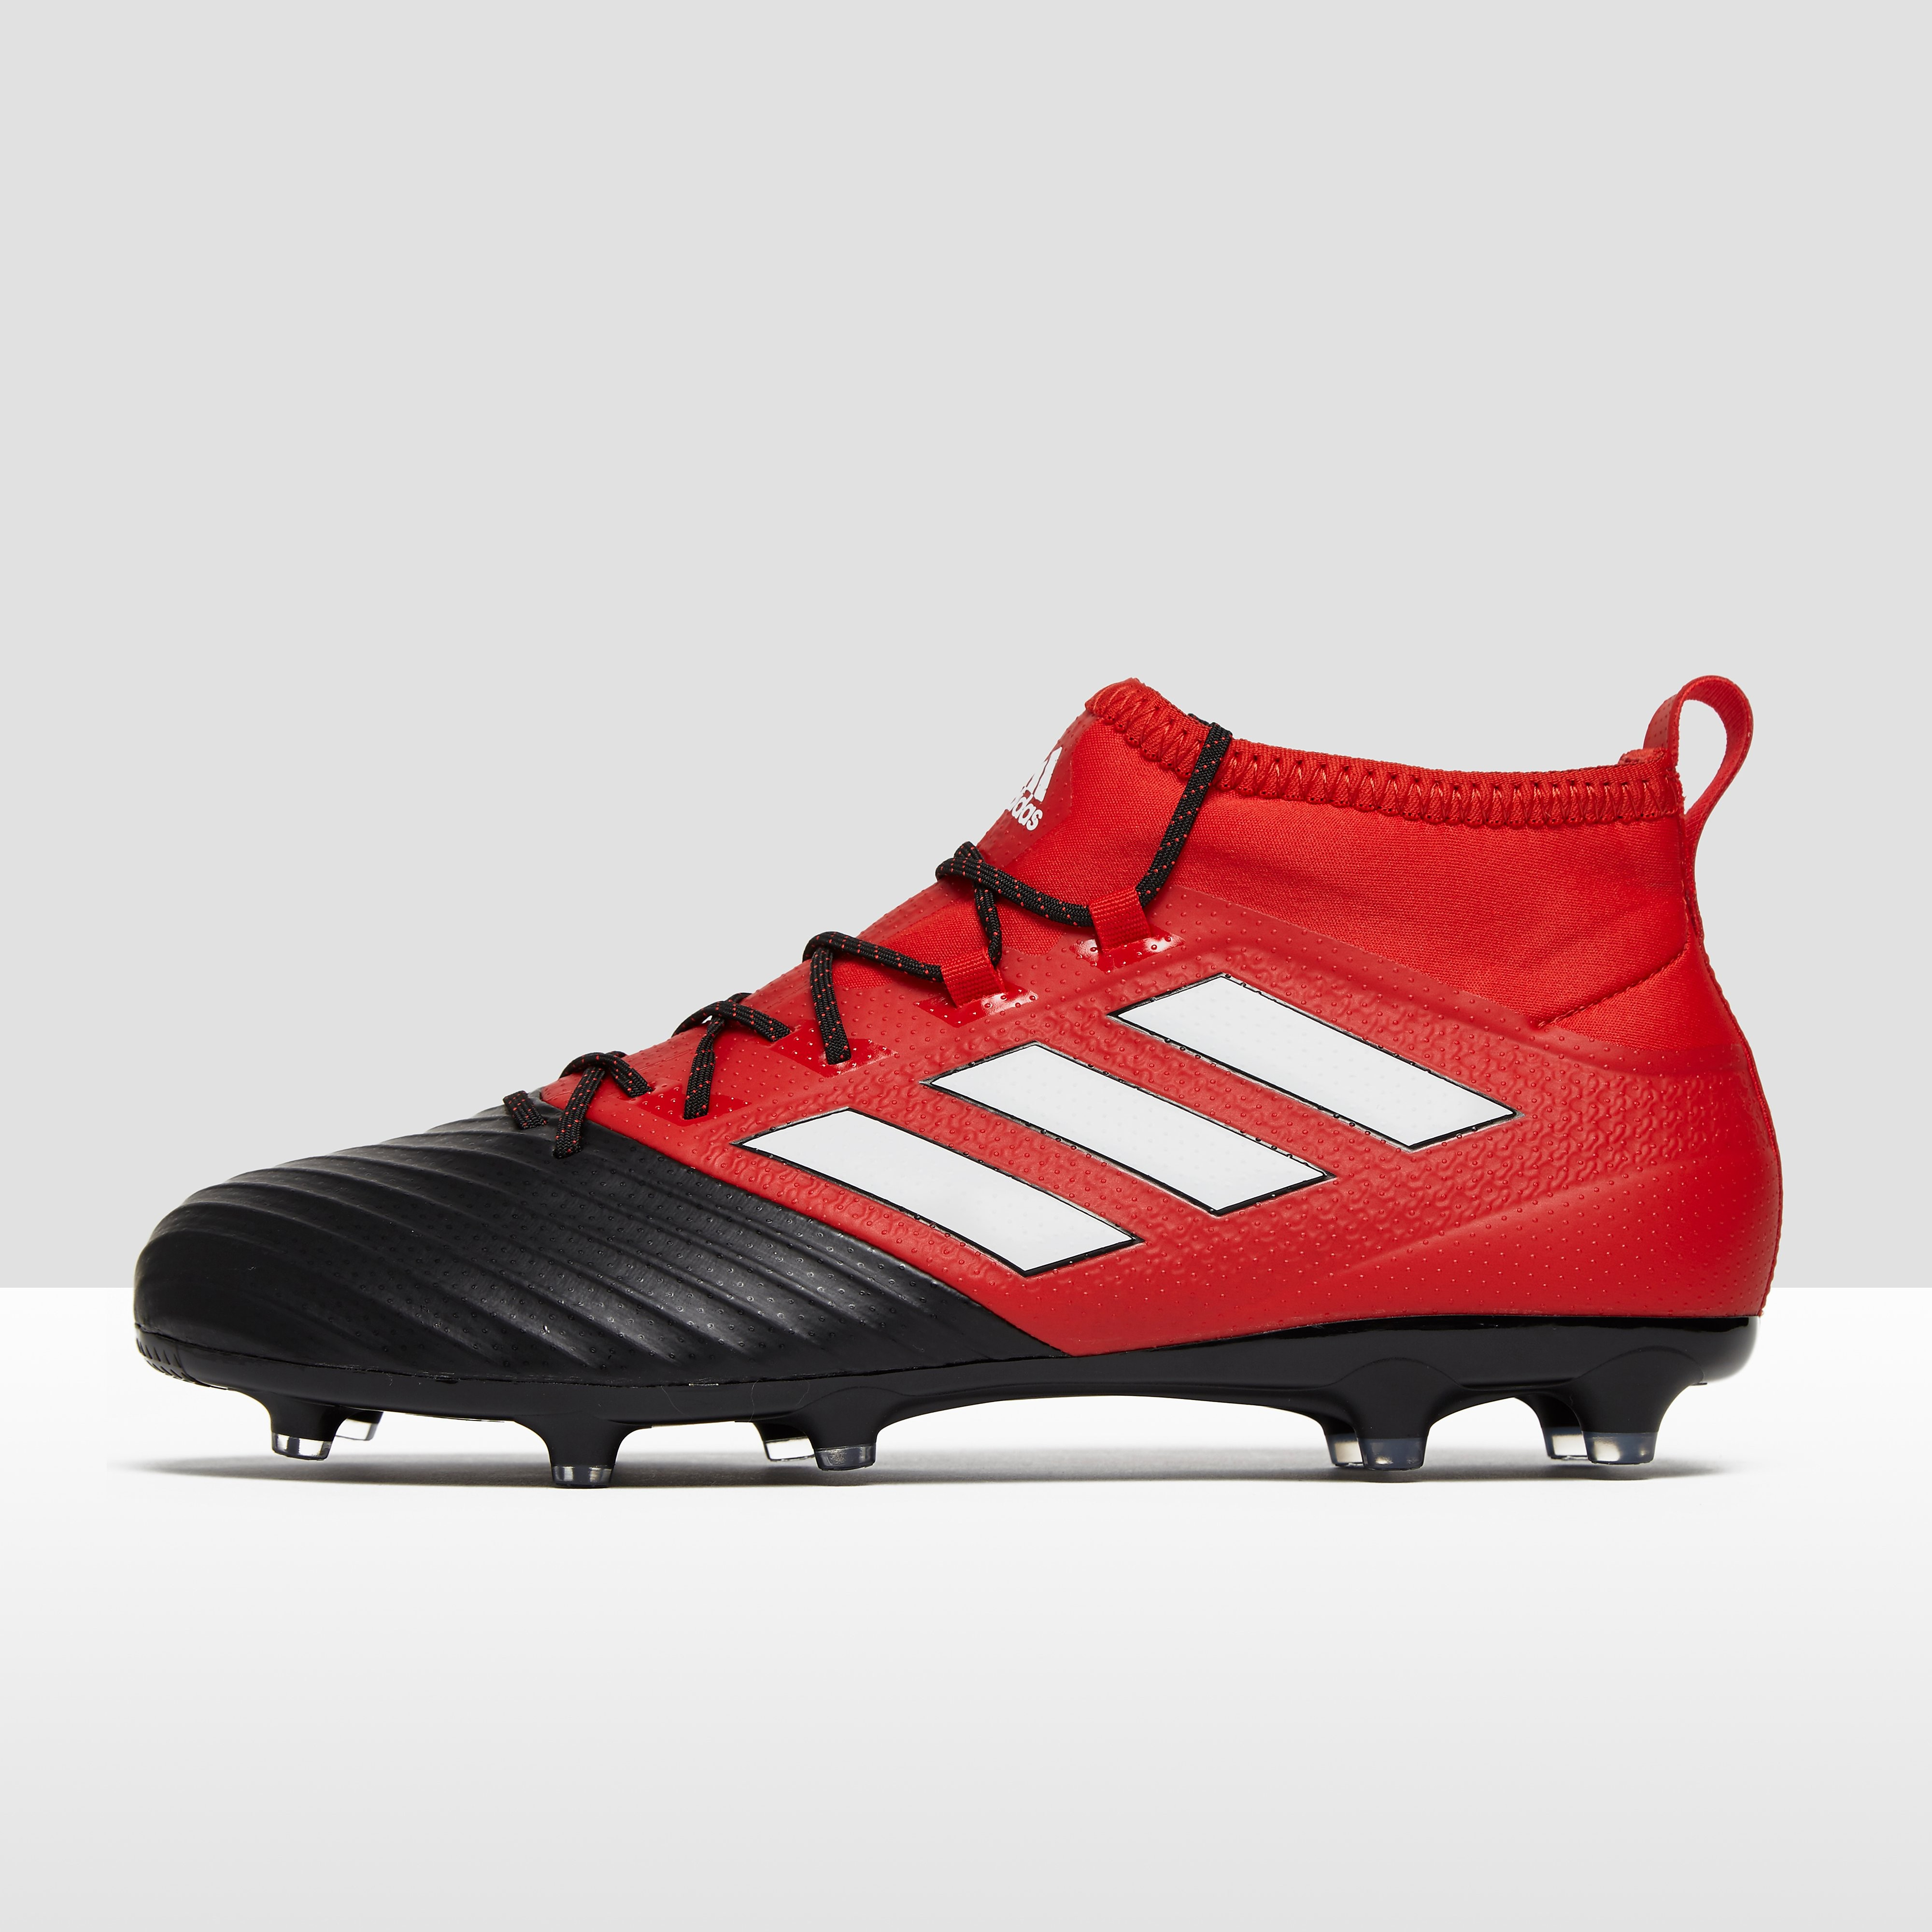 adidas Red Limit ACE 17.2 Primemesh Firm Ground Football Boots